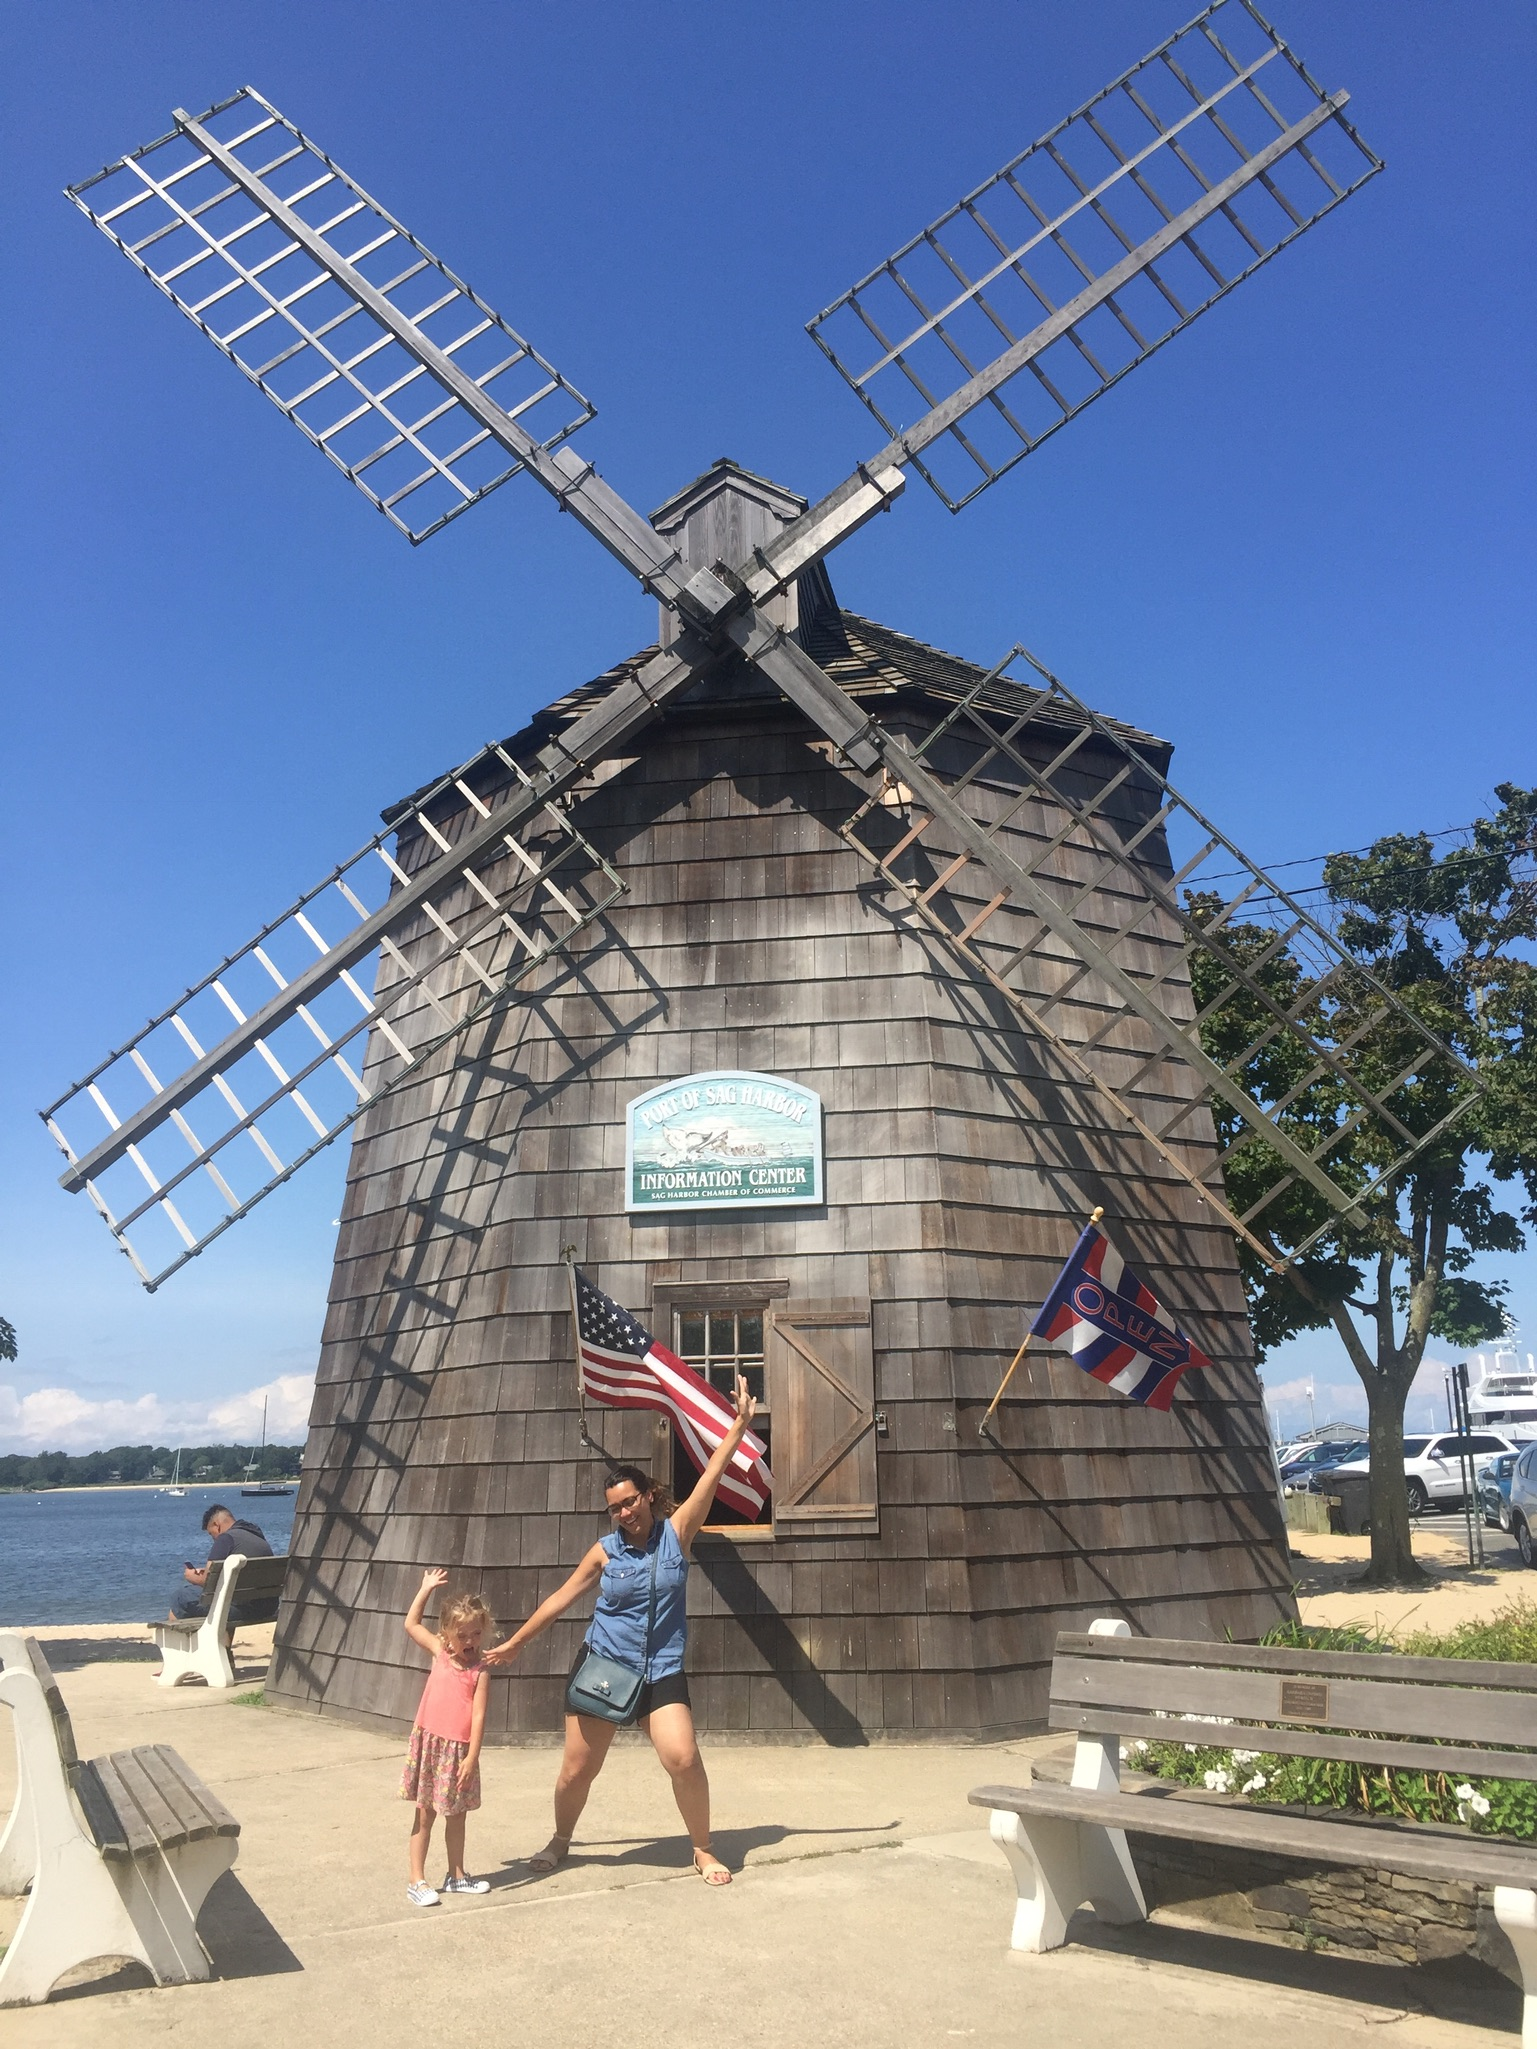 The next day we drove out to Sag Harbor, and found a silly windmill, just like in one of Lucie's favorite books,  Knuffle Bunny Free . The whole series is great, but that one is a particular favorite.